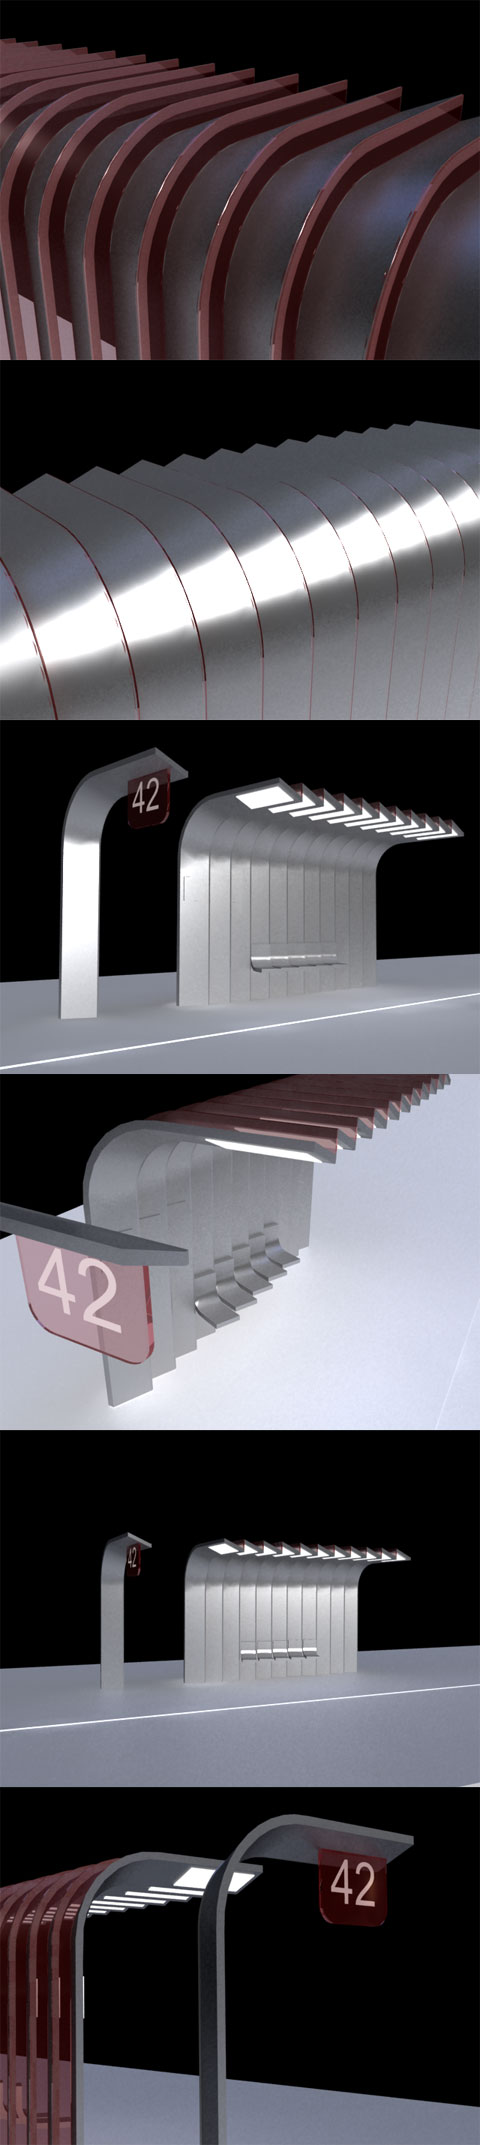 4_1_bus-stop-shelter